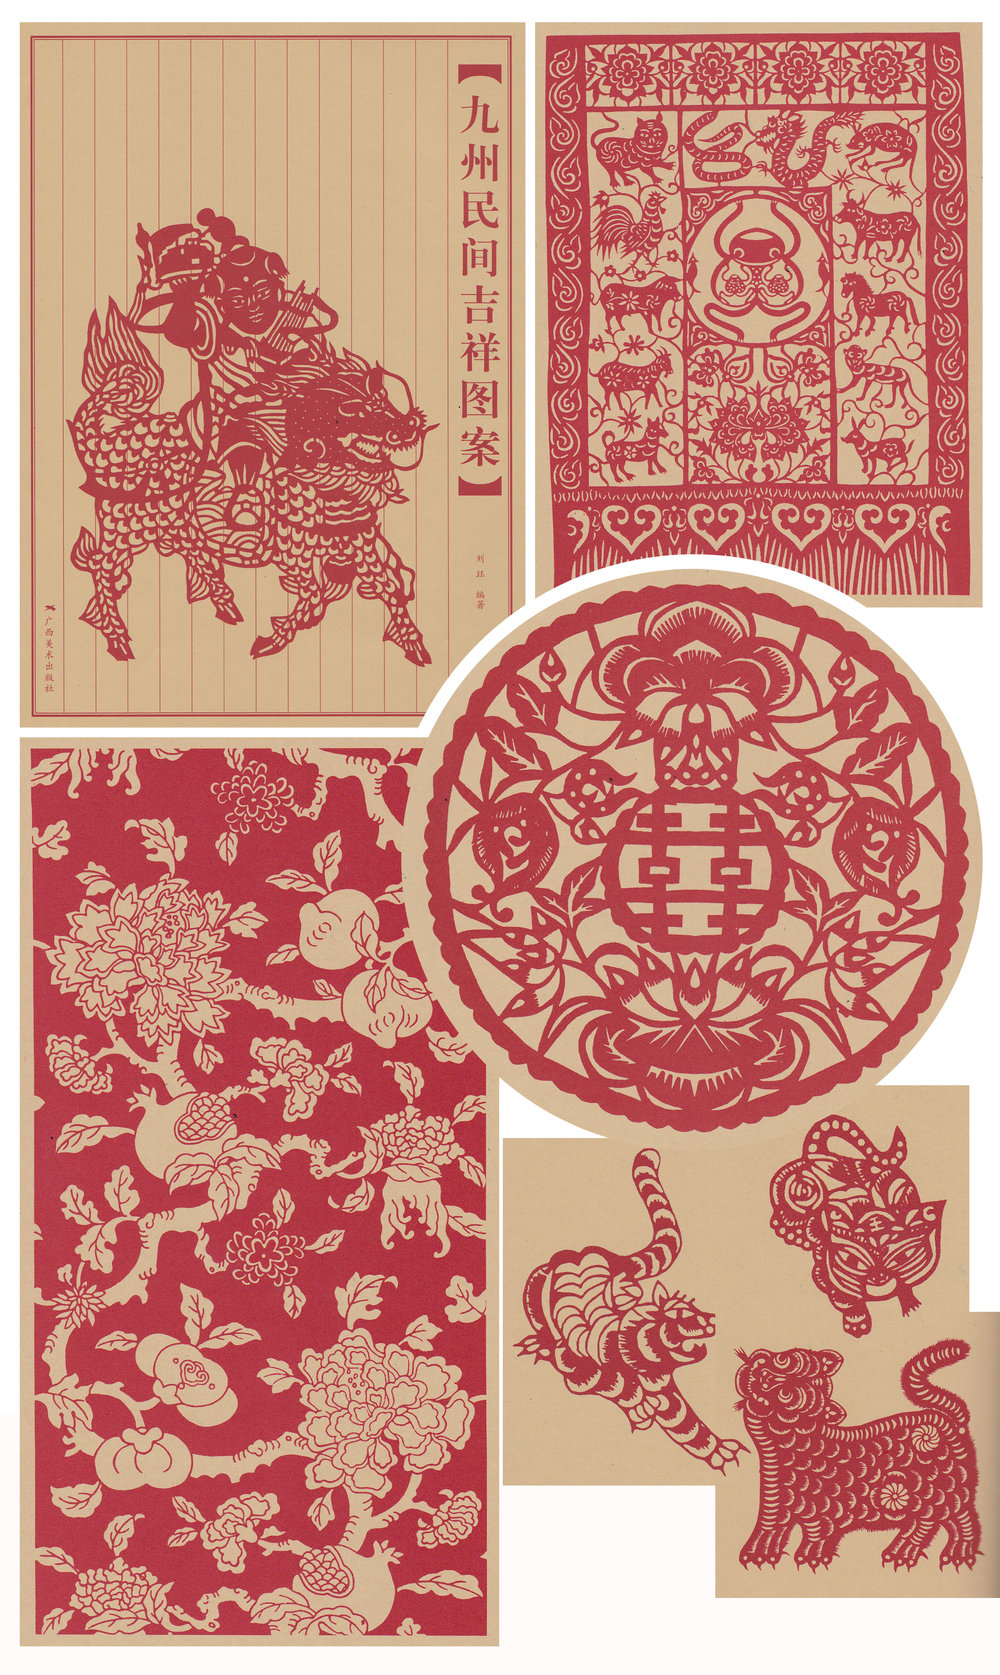 Examples of Chinese Paper Cuts taken from one of my books